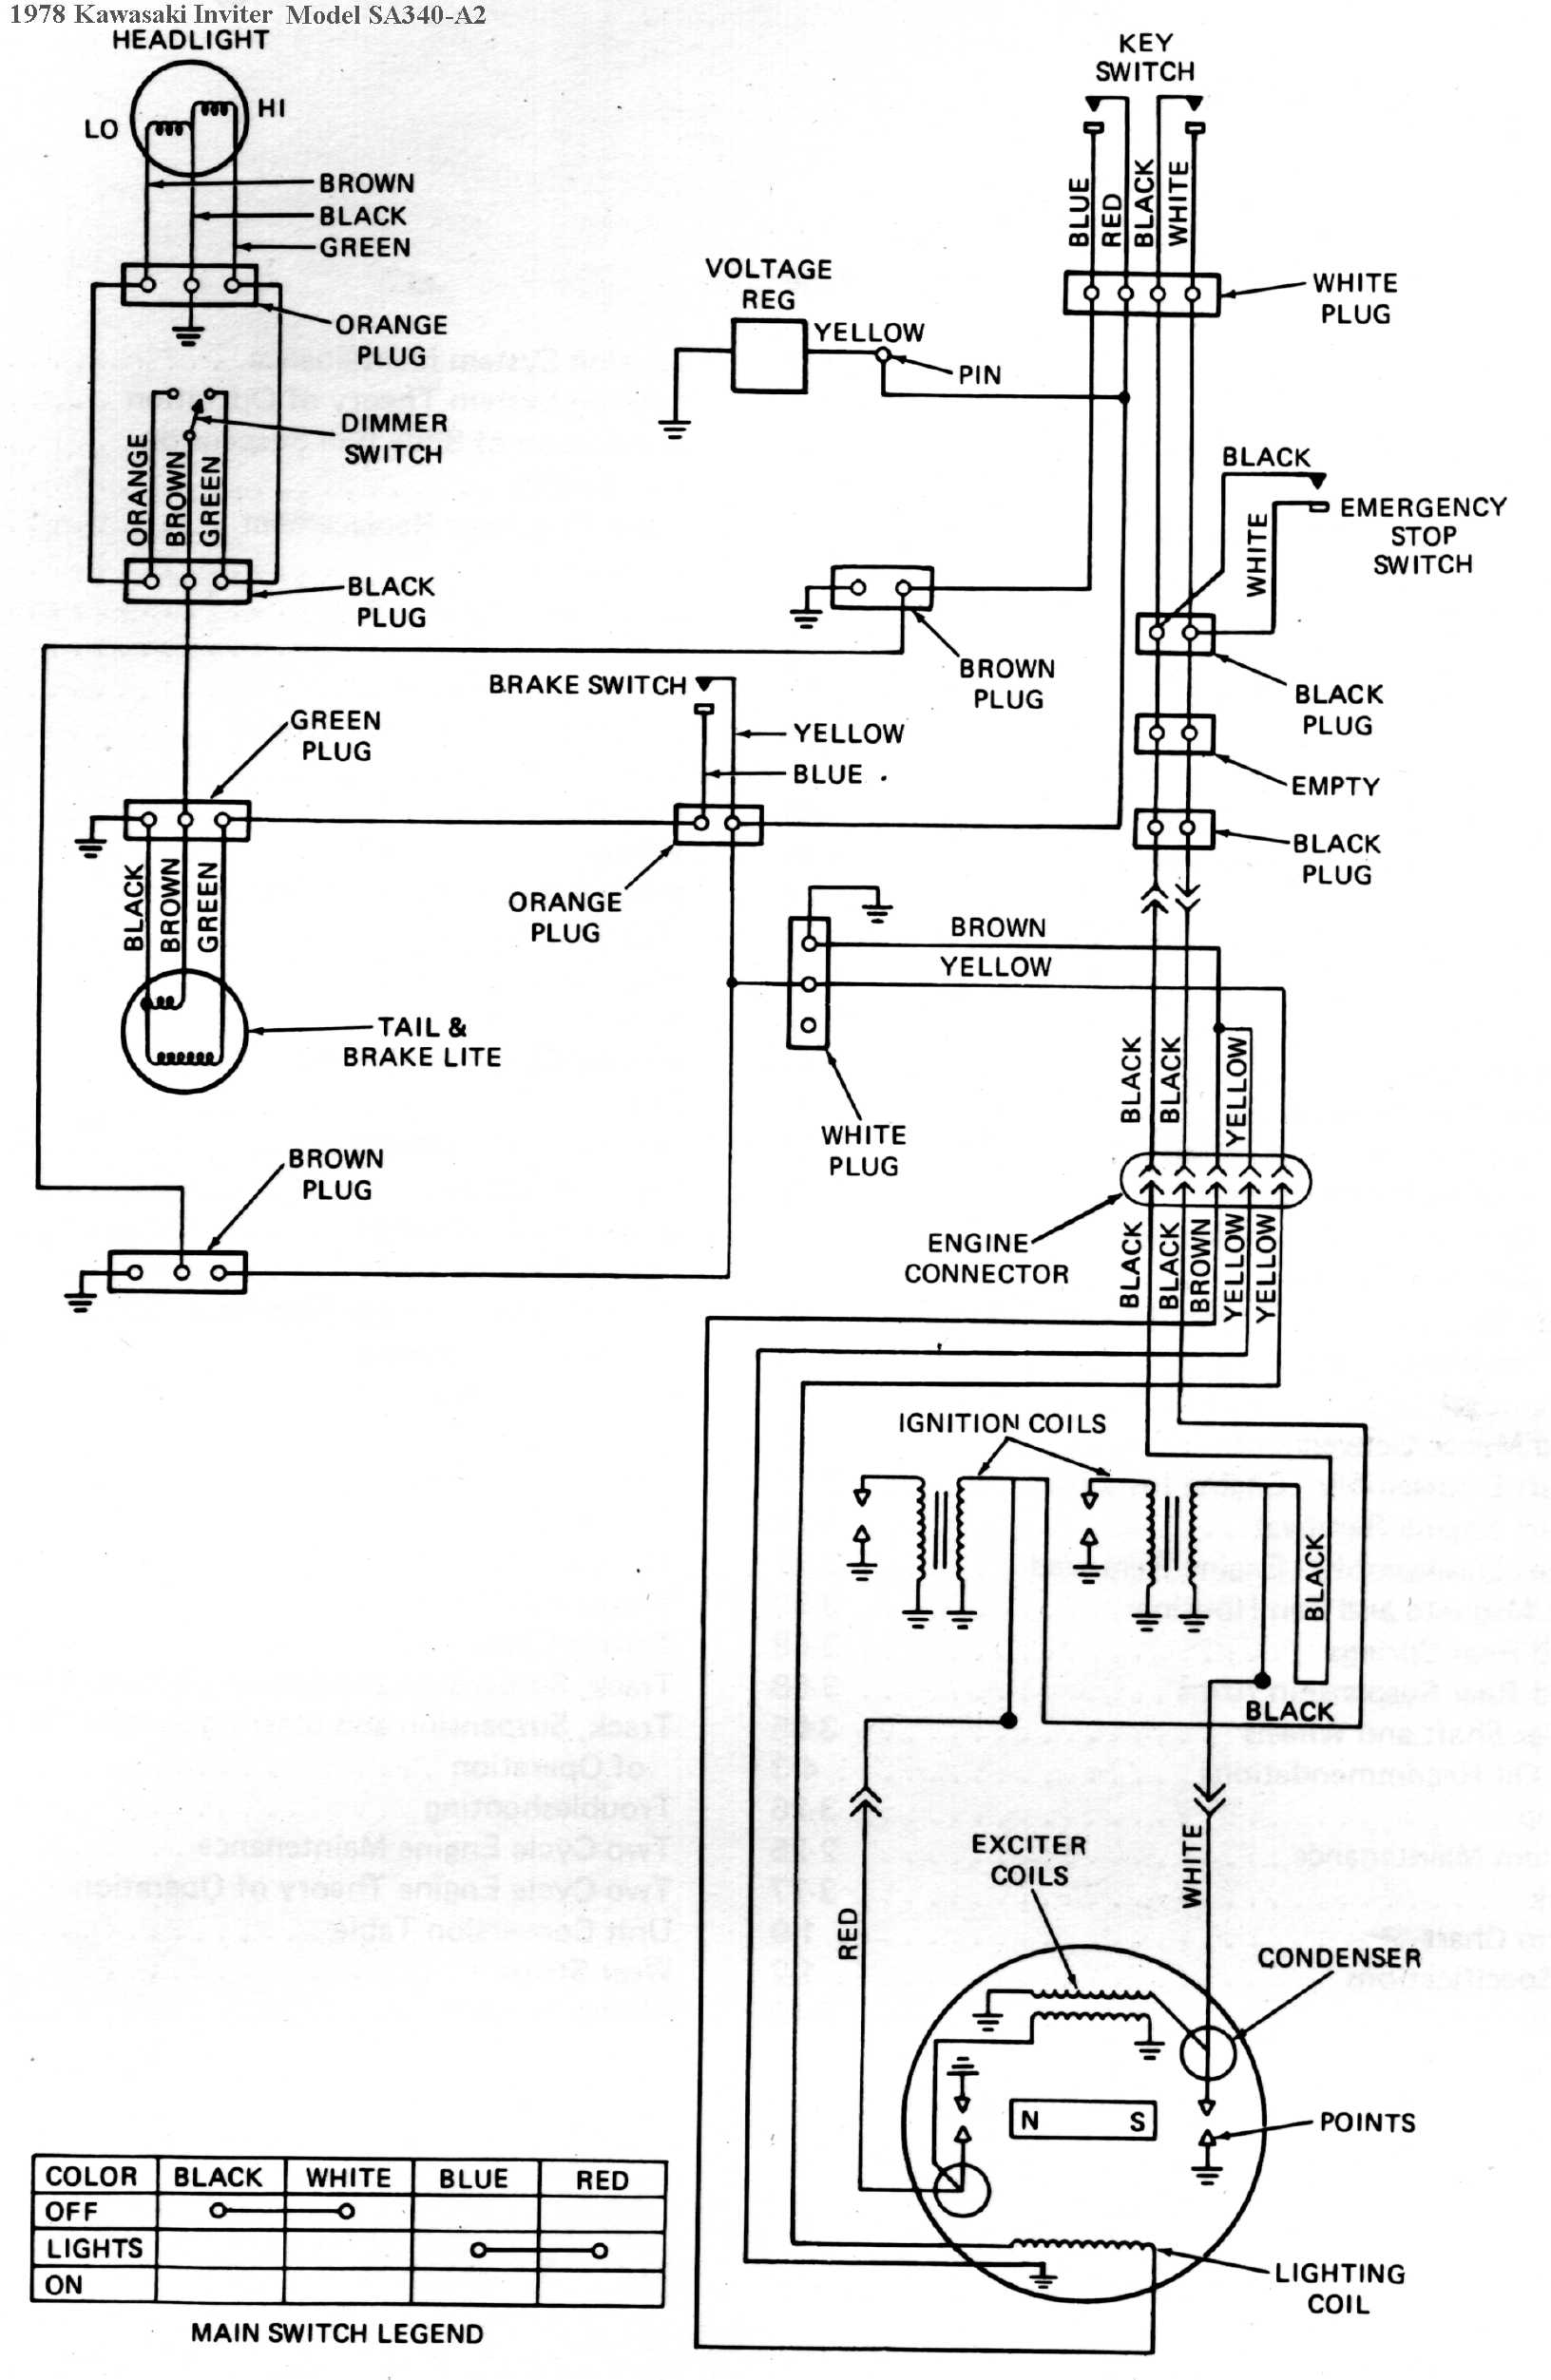 1978 Kawasaki Inviter/Intrigure Snowmobile Wiring Diagrams